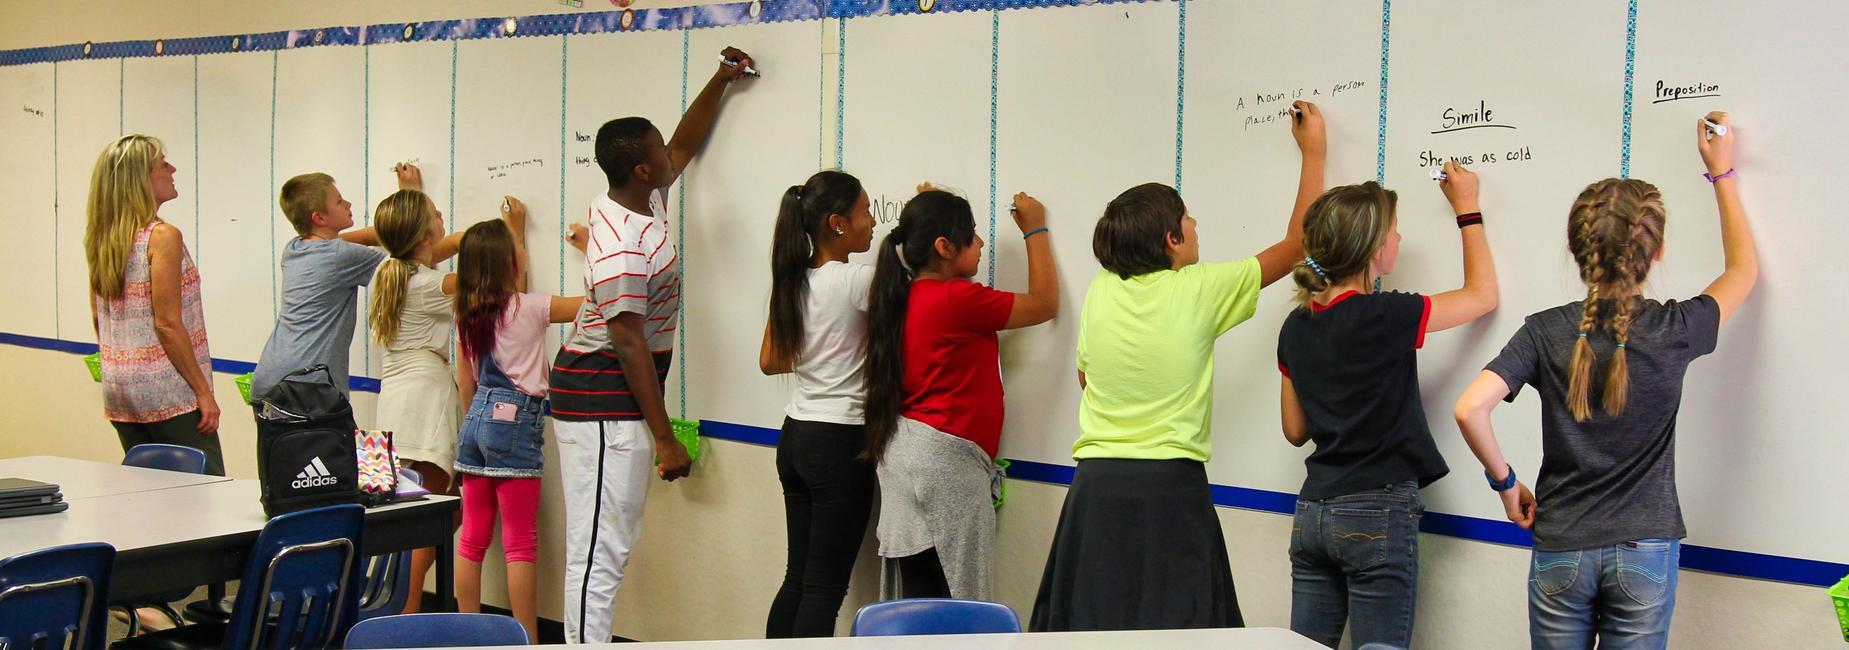 Students writing on a white board